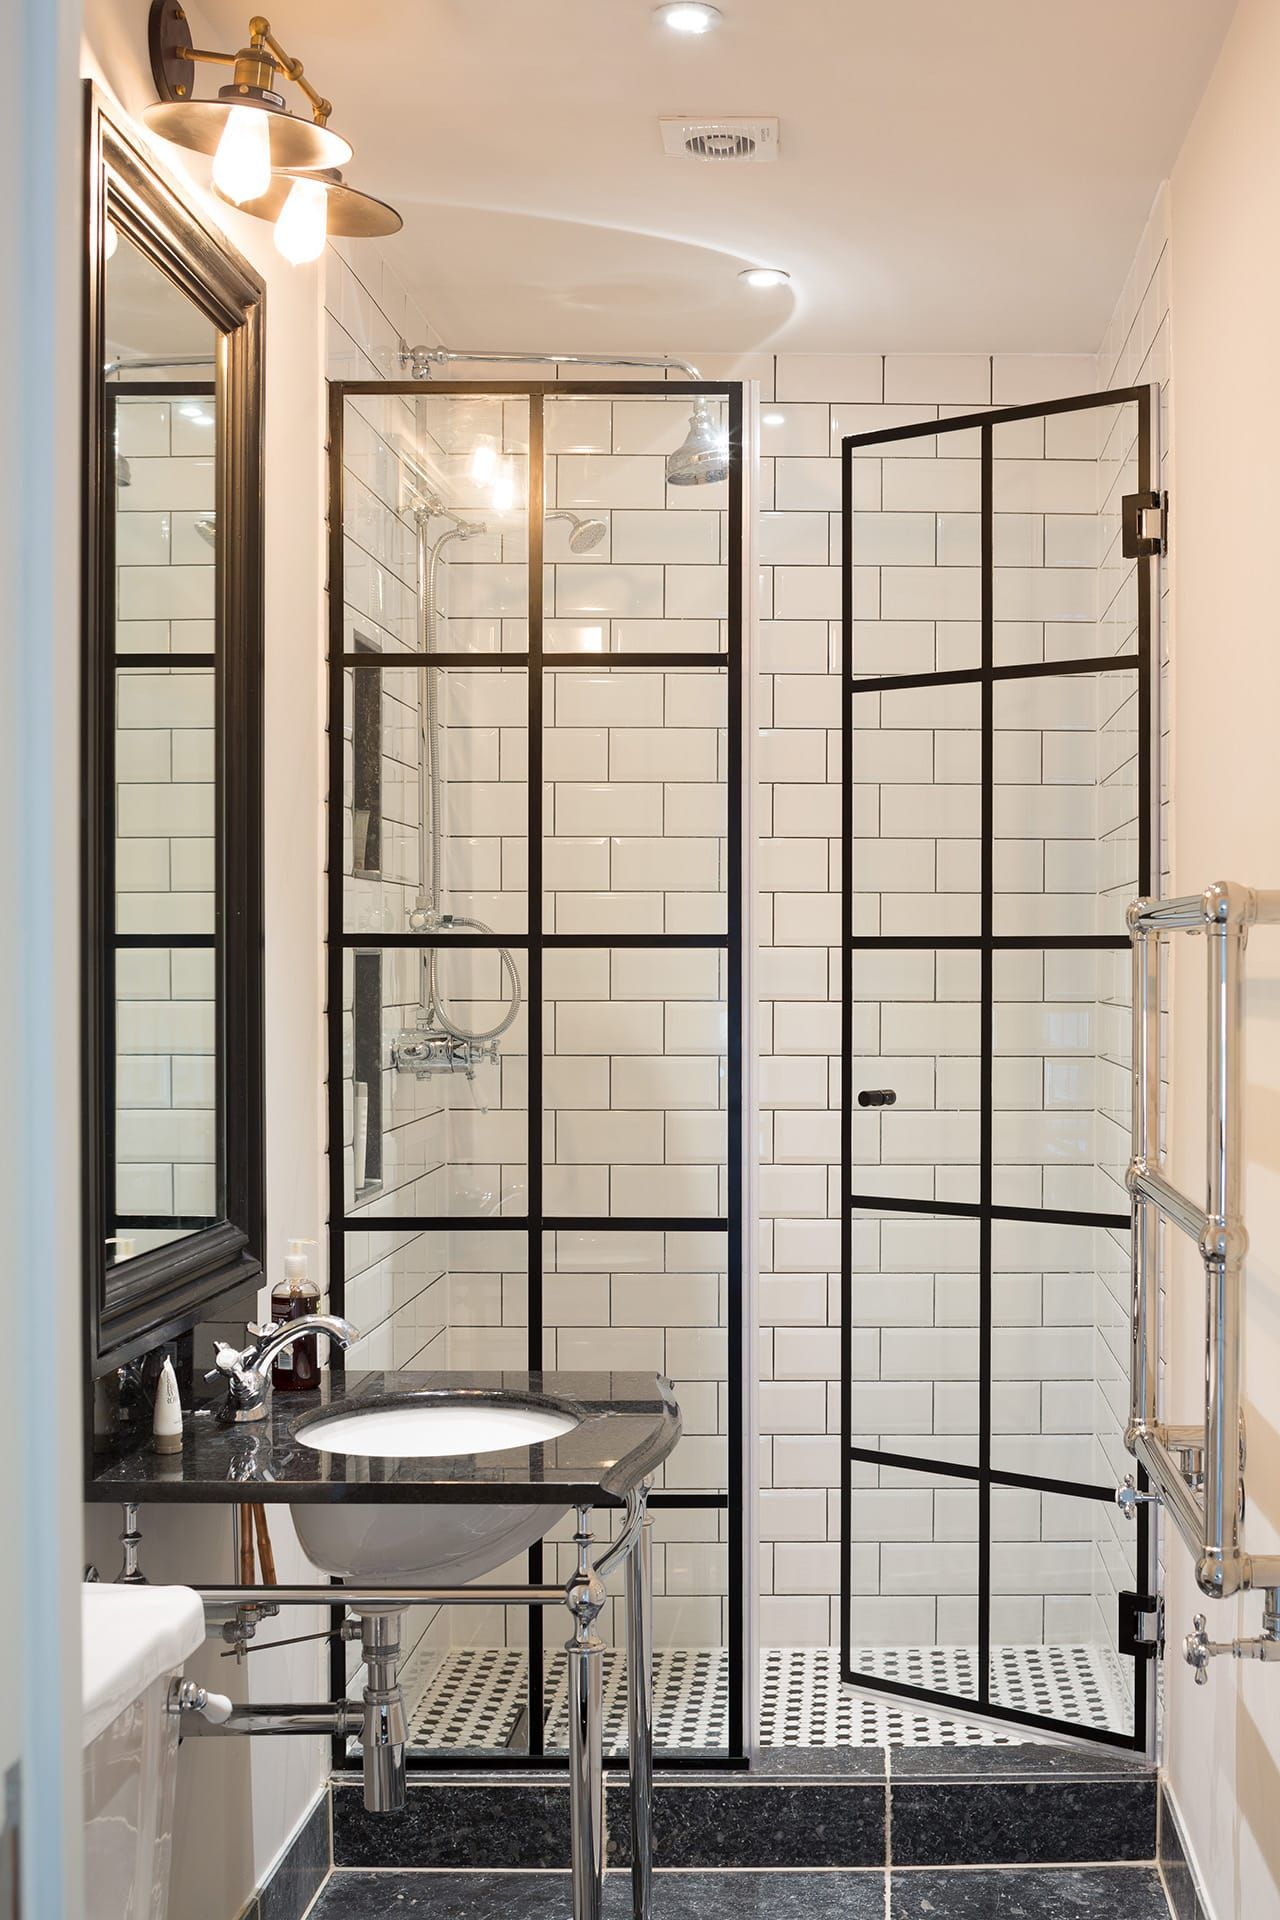 Take standard shower doors and add lead flashing for for Cool shower door ideas